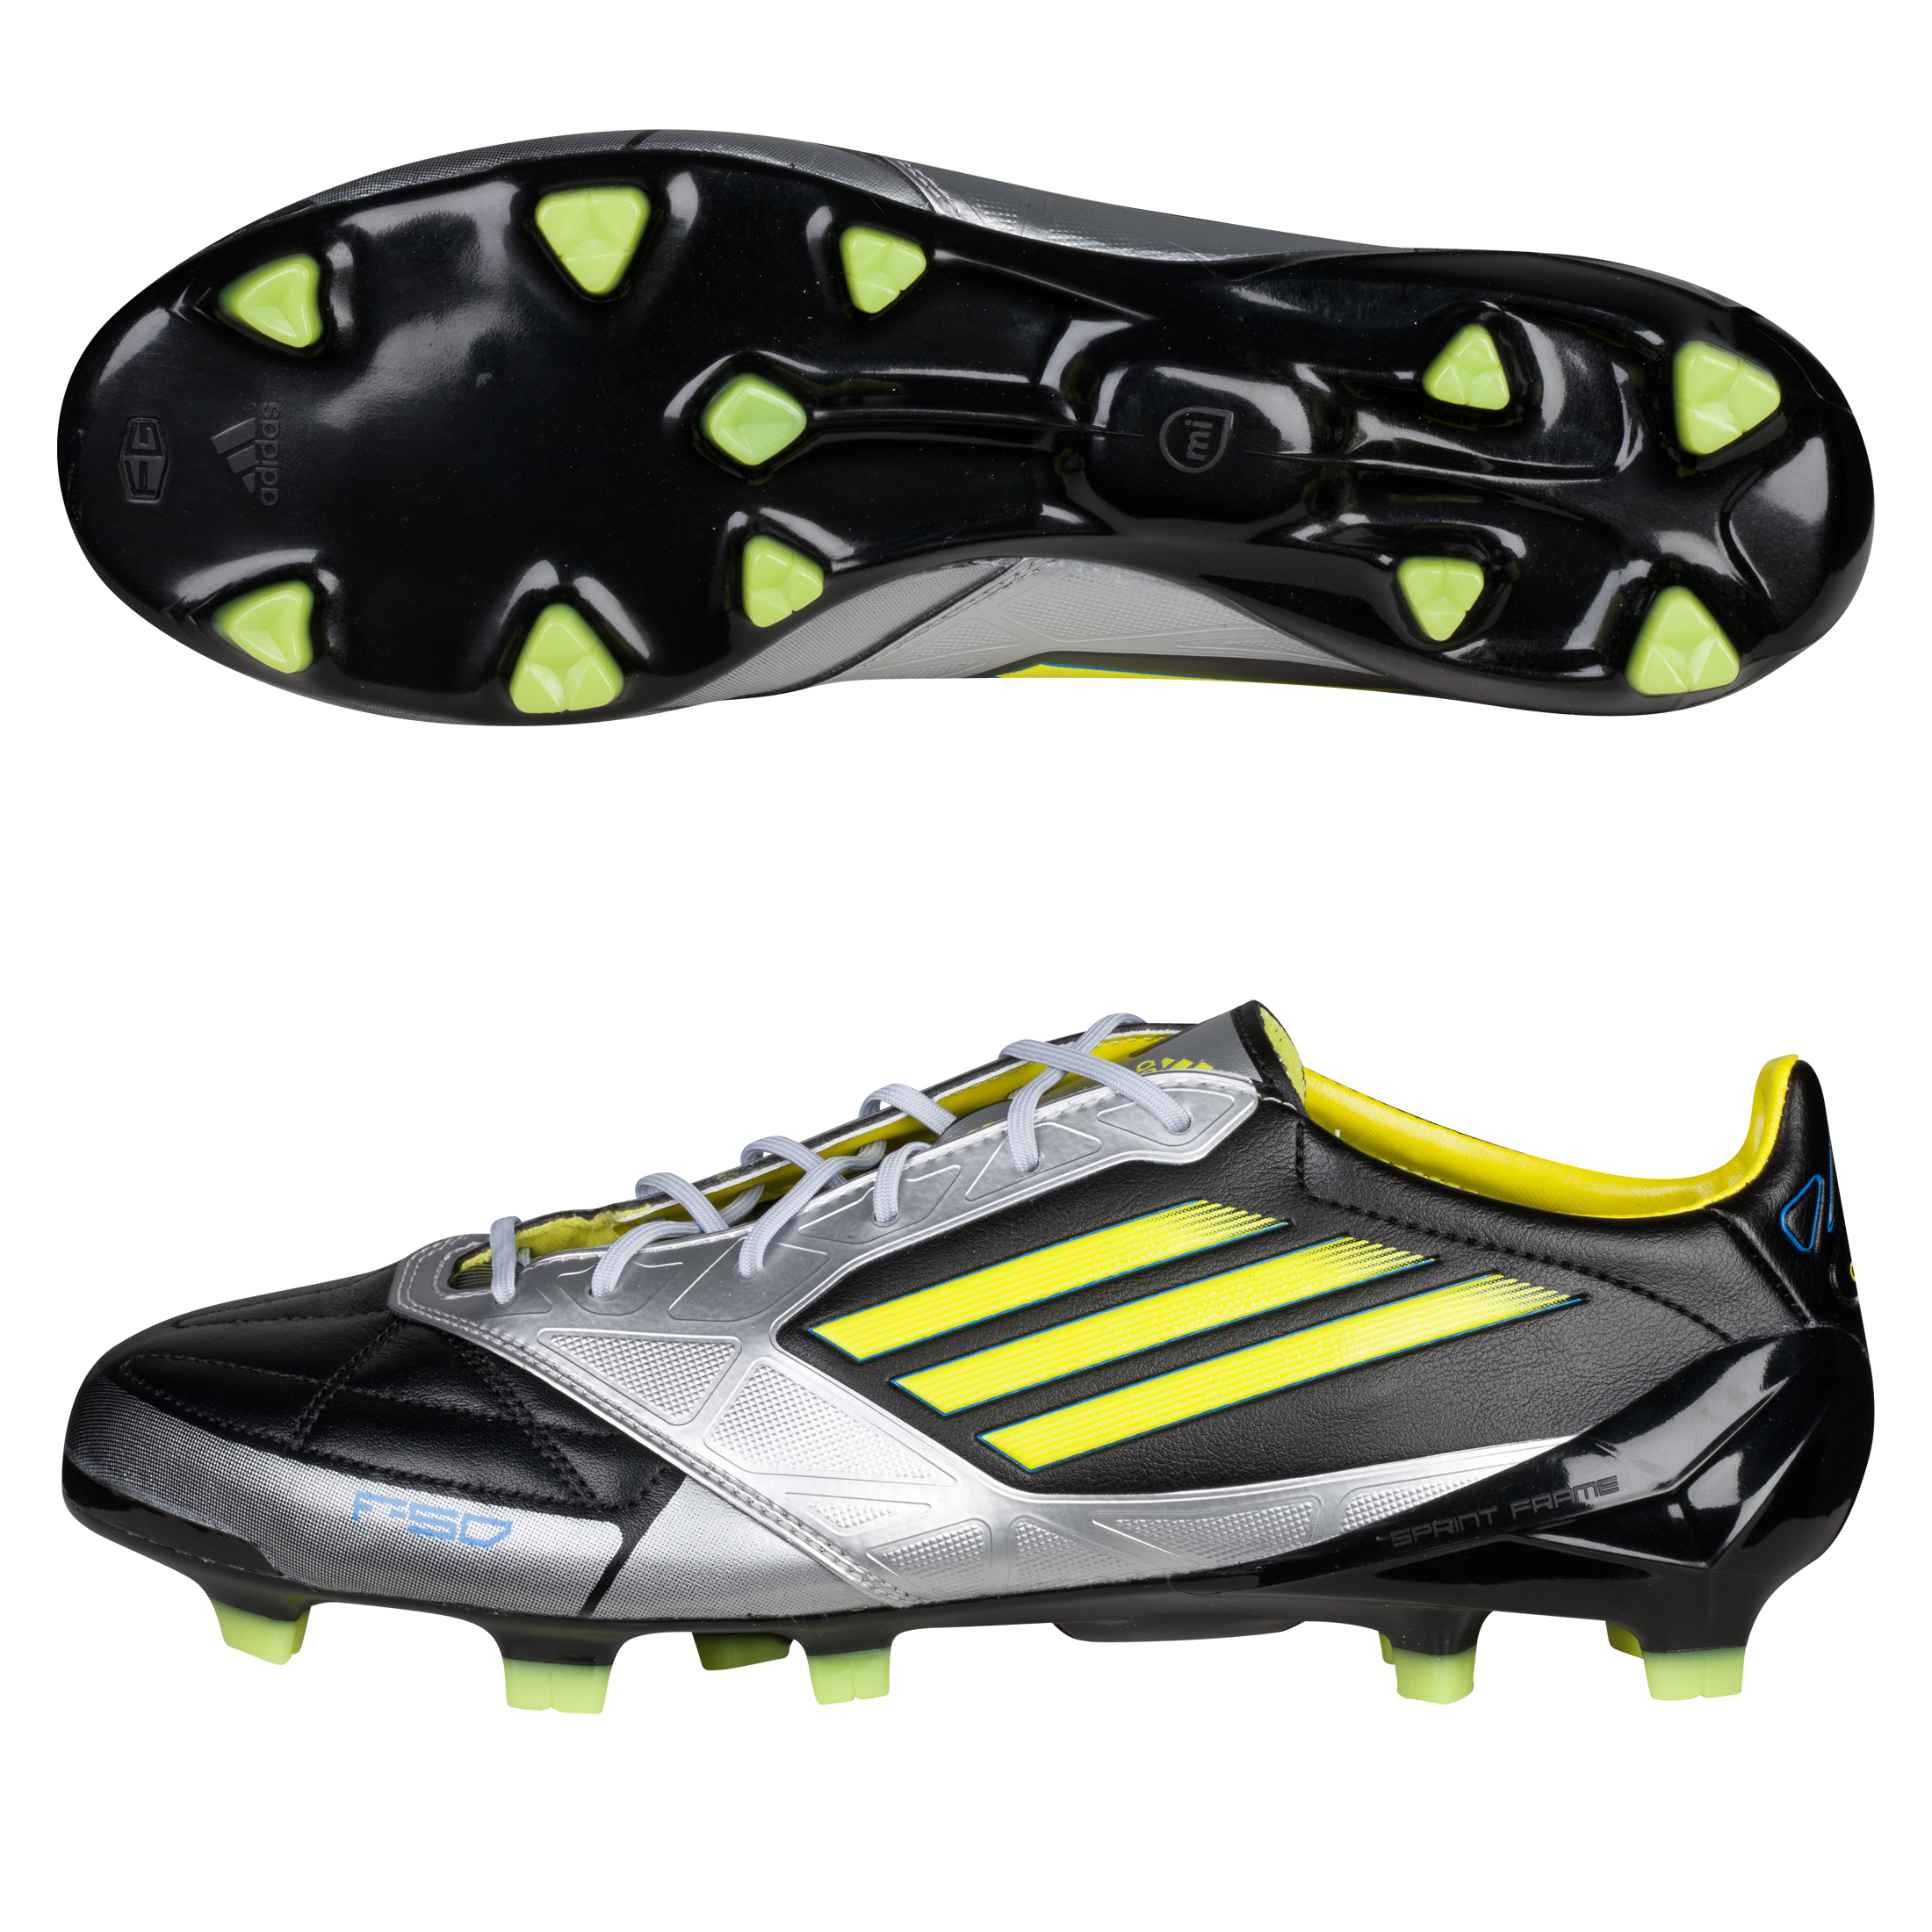 F50 Adizero TRX FG Leather miCoach Bundle Black/Lab Lime/Metallic Silver